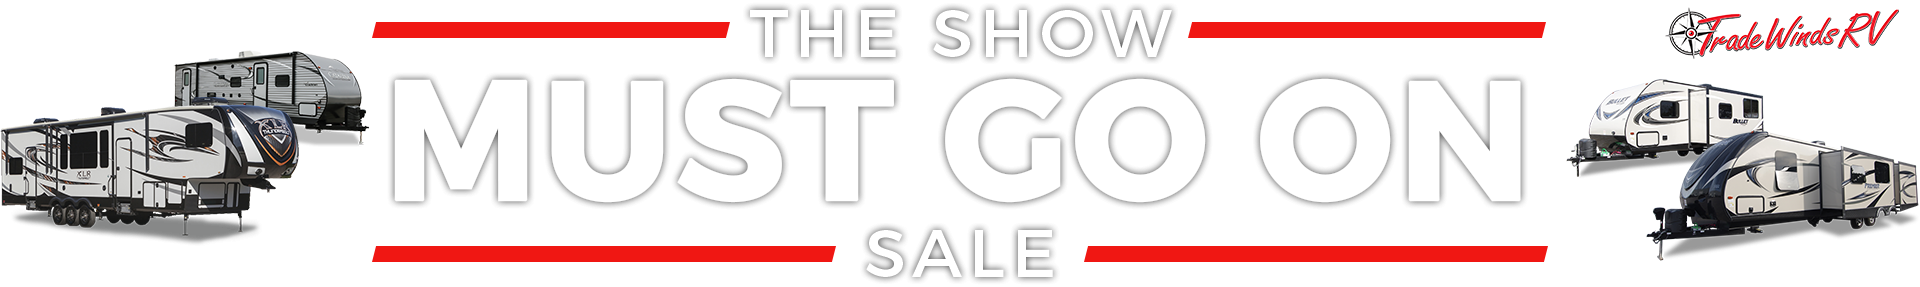 The Show Must Go On Sale